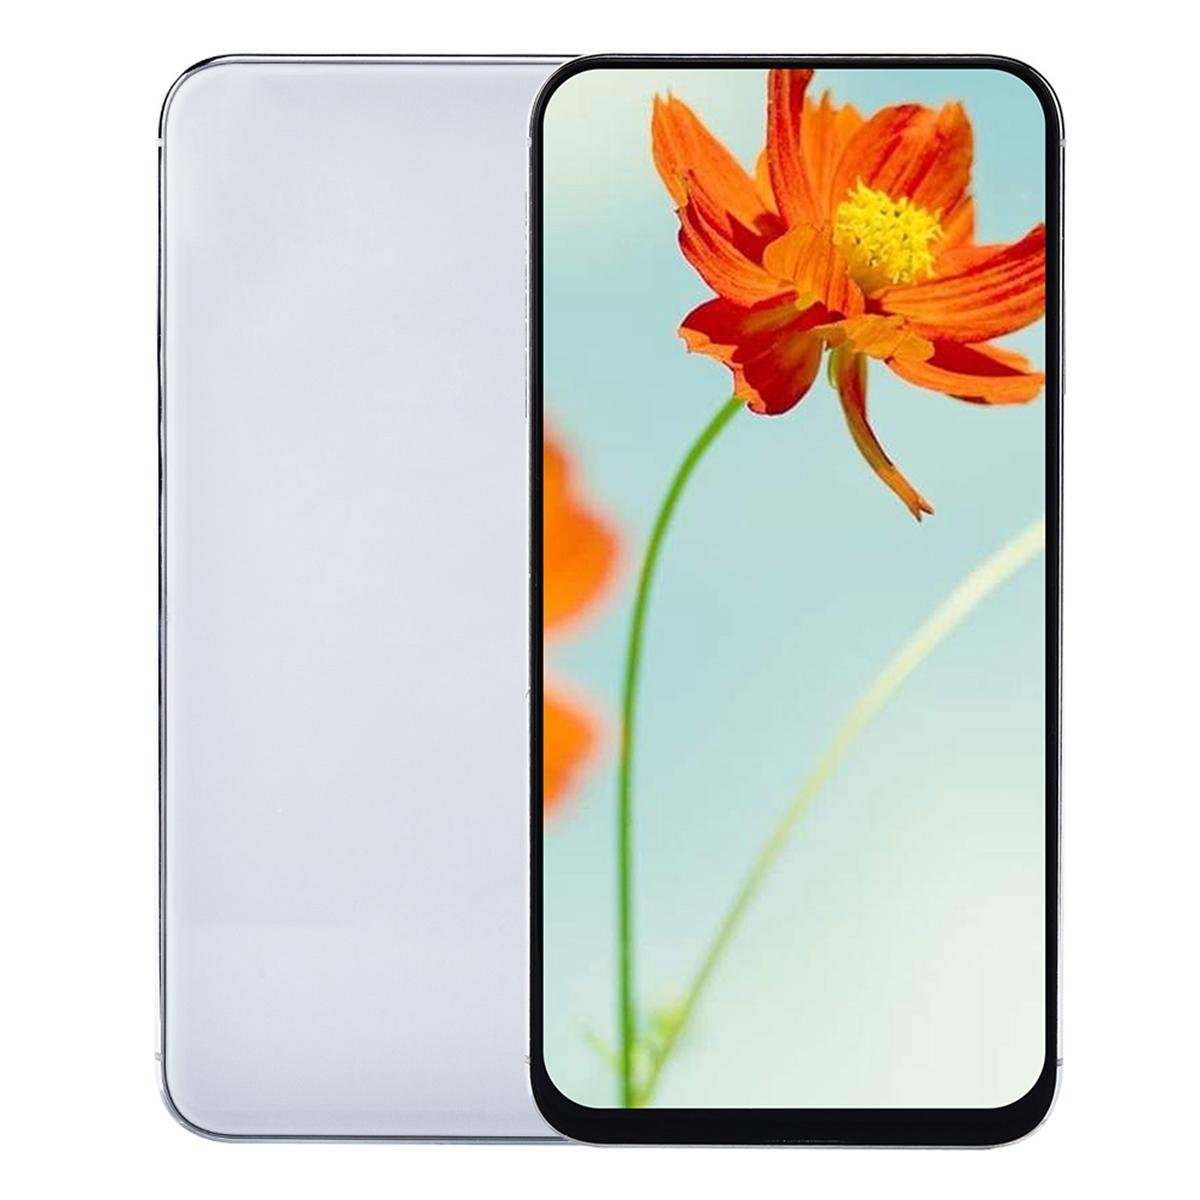 1GB 16GB+32GB Android OS i12 Pro Max 5G Smart Phone 3G WCDMA Quad Core Face ID Wireless Charging Metal Frame 2.5D Glass Back Cover 12MP Camera Smartphone Green Tag Sealed